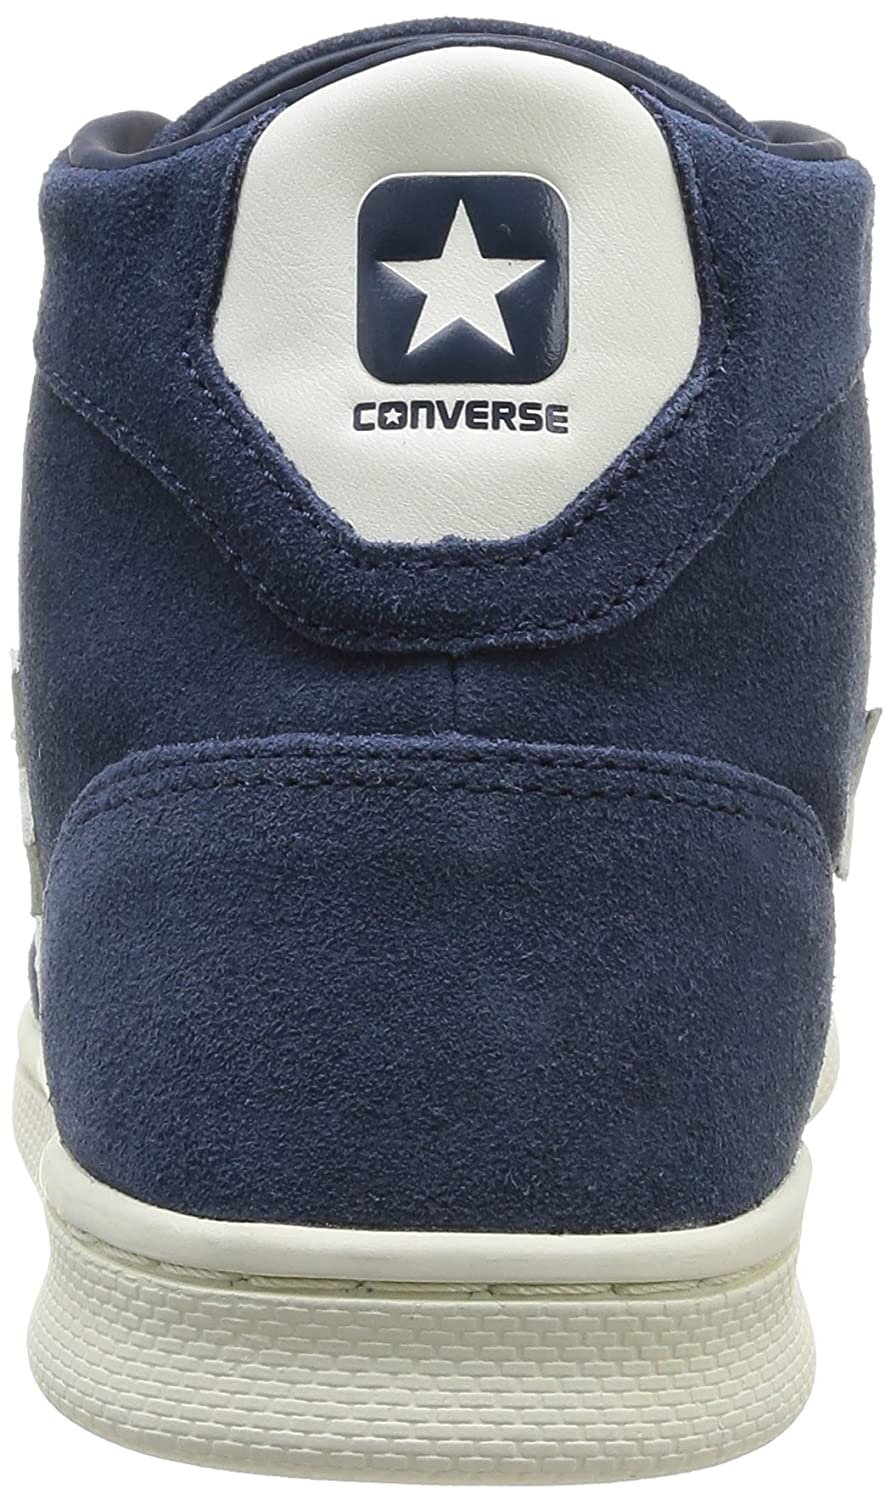 Converse Hightop Pro Turnschuhe Pro Hightop Leather LP Mid Suede 627d22